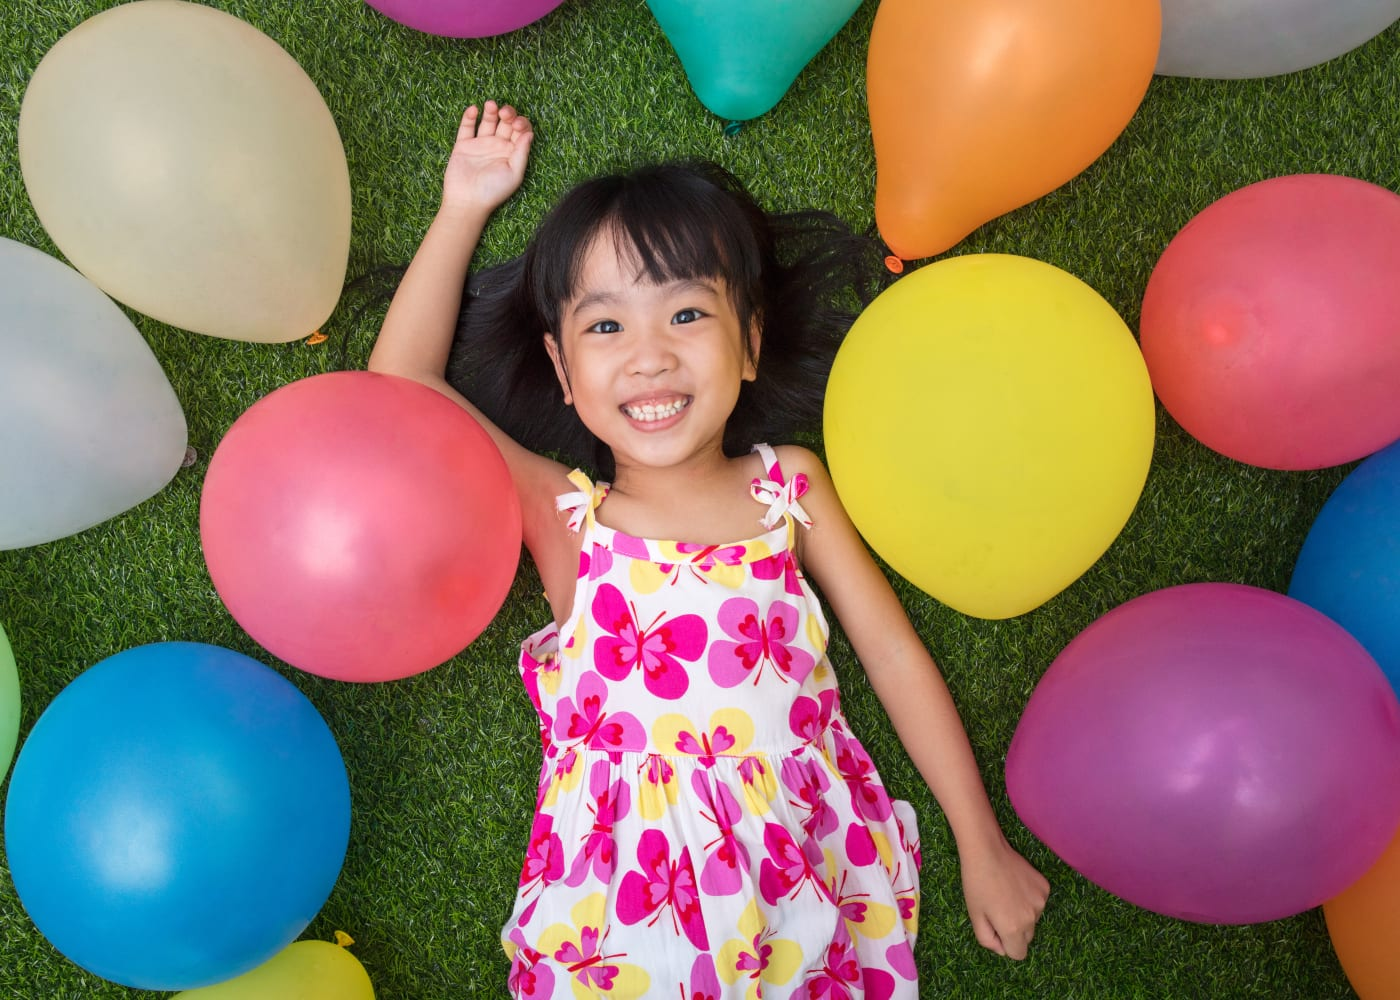 Children's Day 2019: Where to celebrate with the kids in Singapore